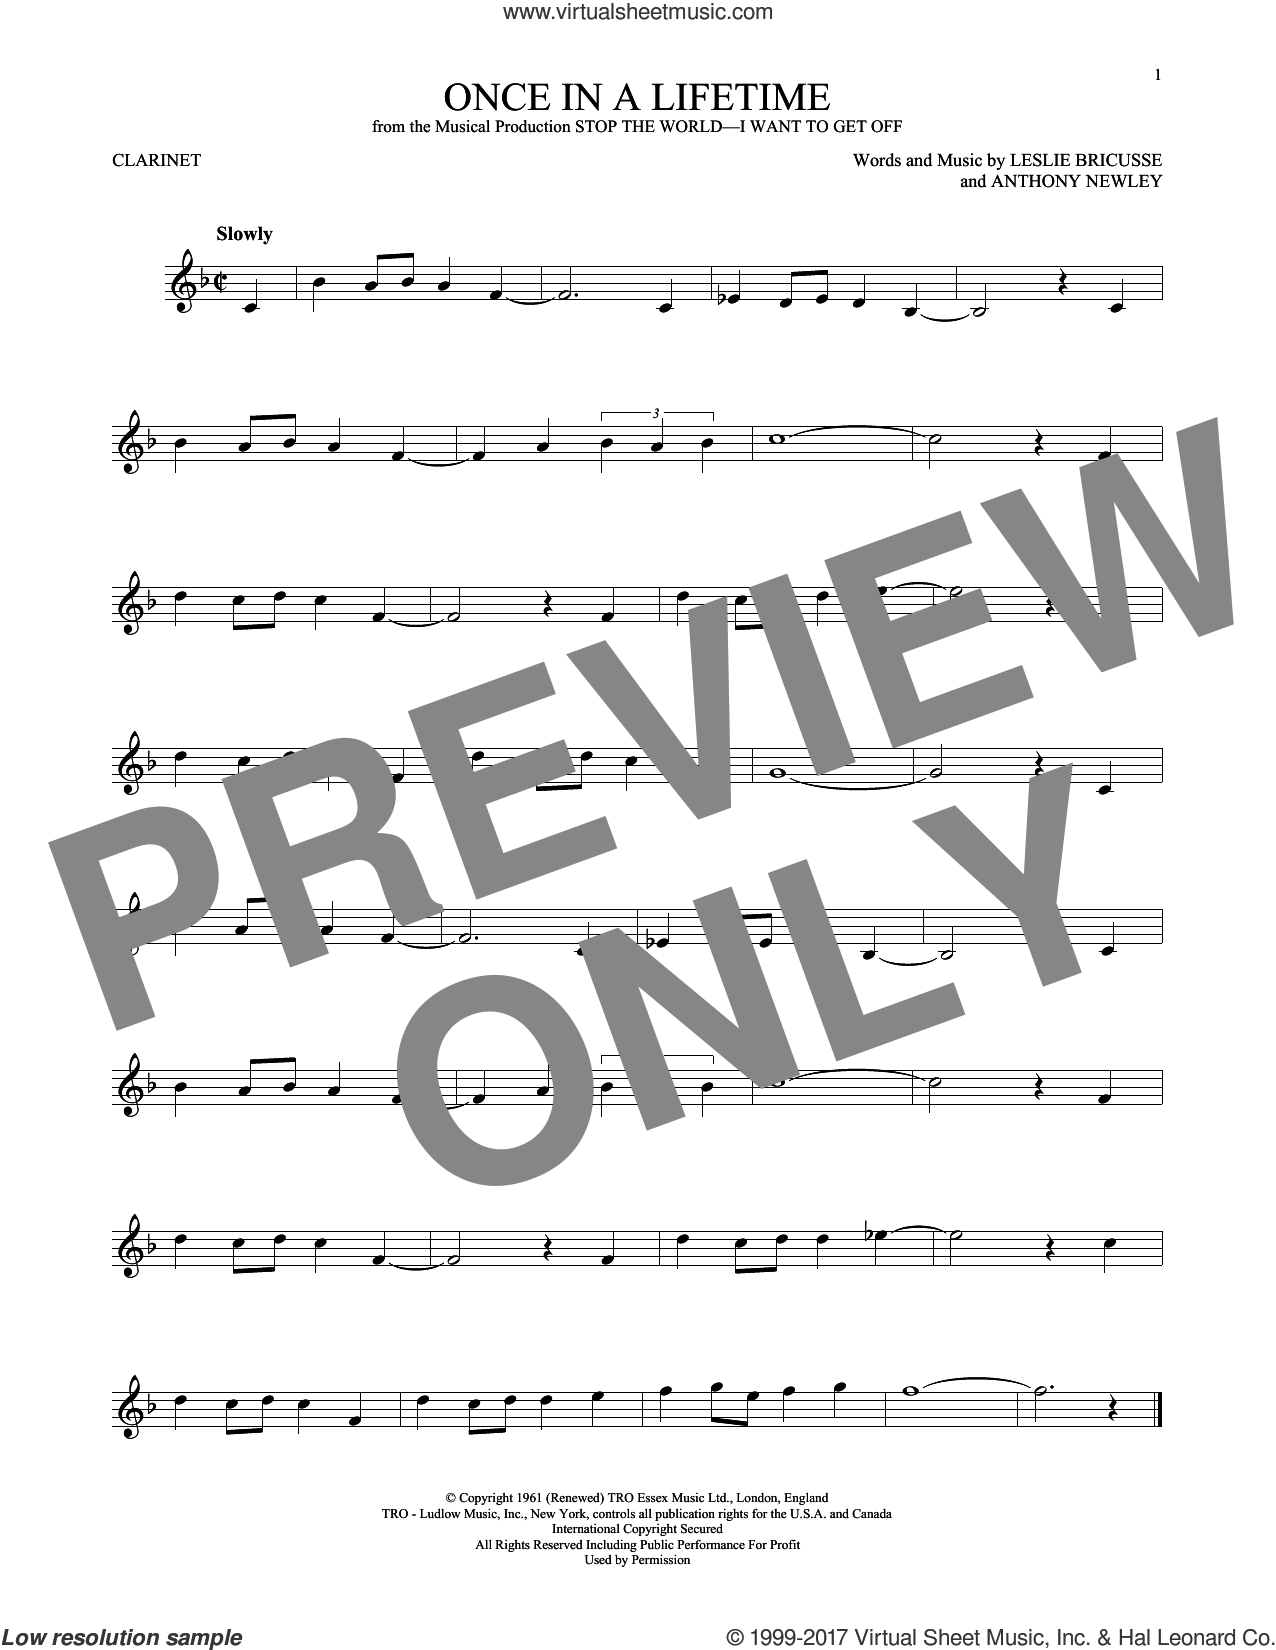 Once In A Lifetime sheet music for clarinet solo by Leslie Bricusse and Anthony Newley, intermediate skill level